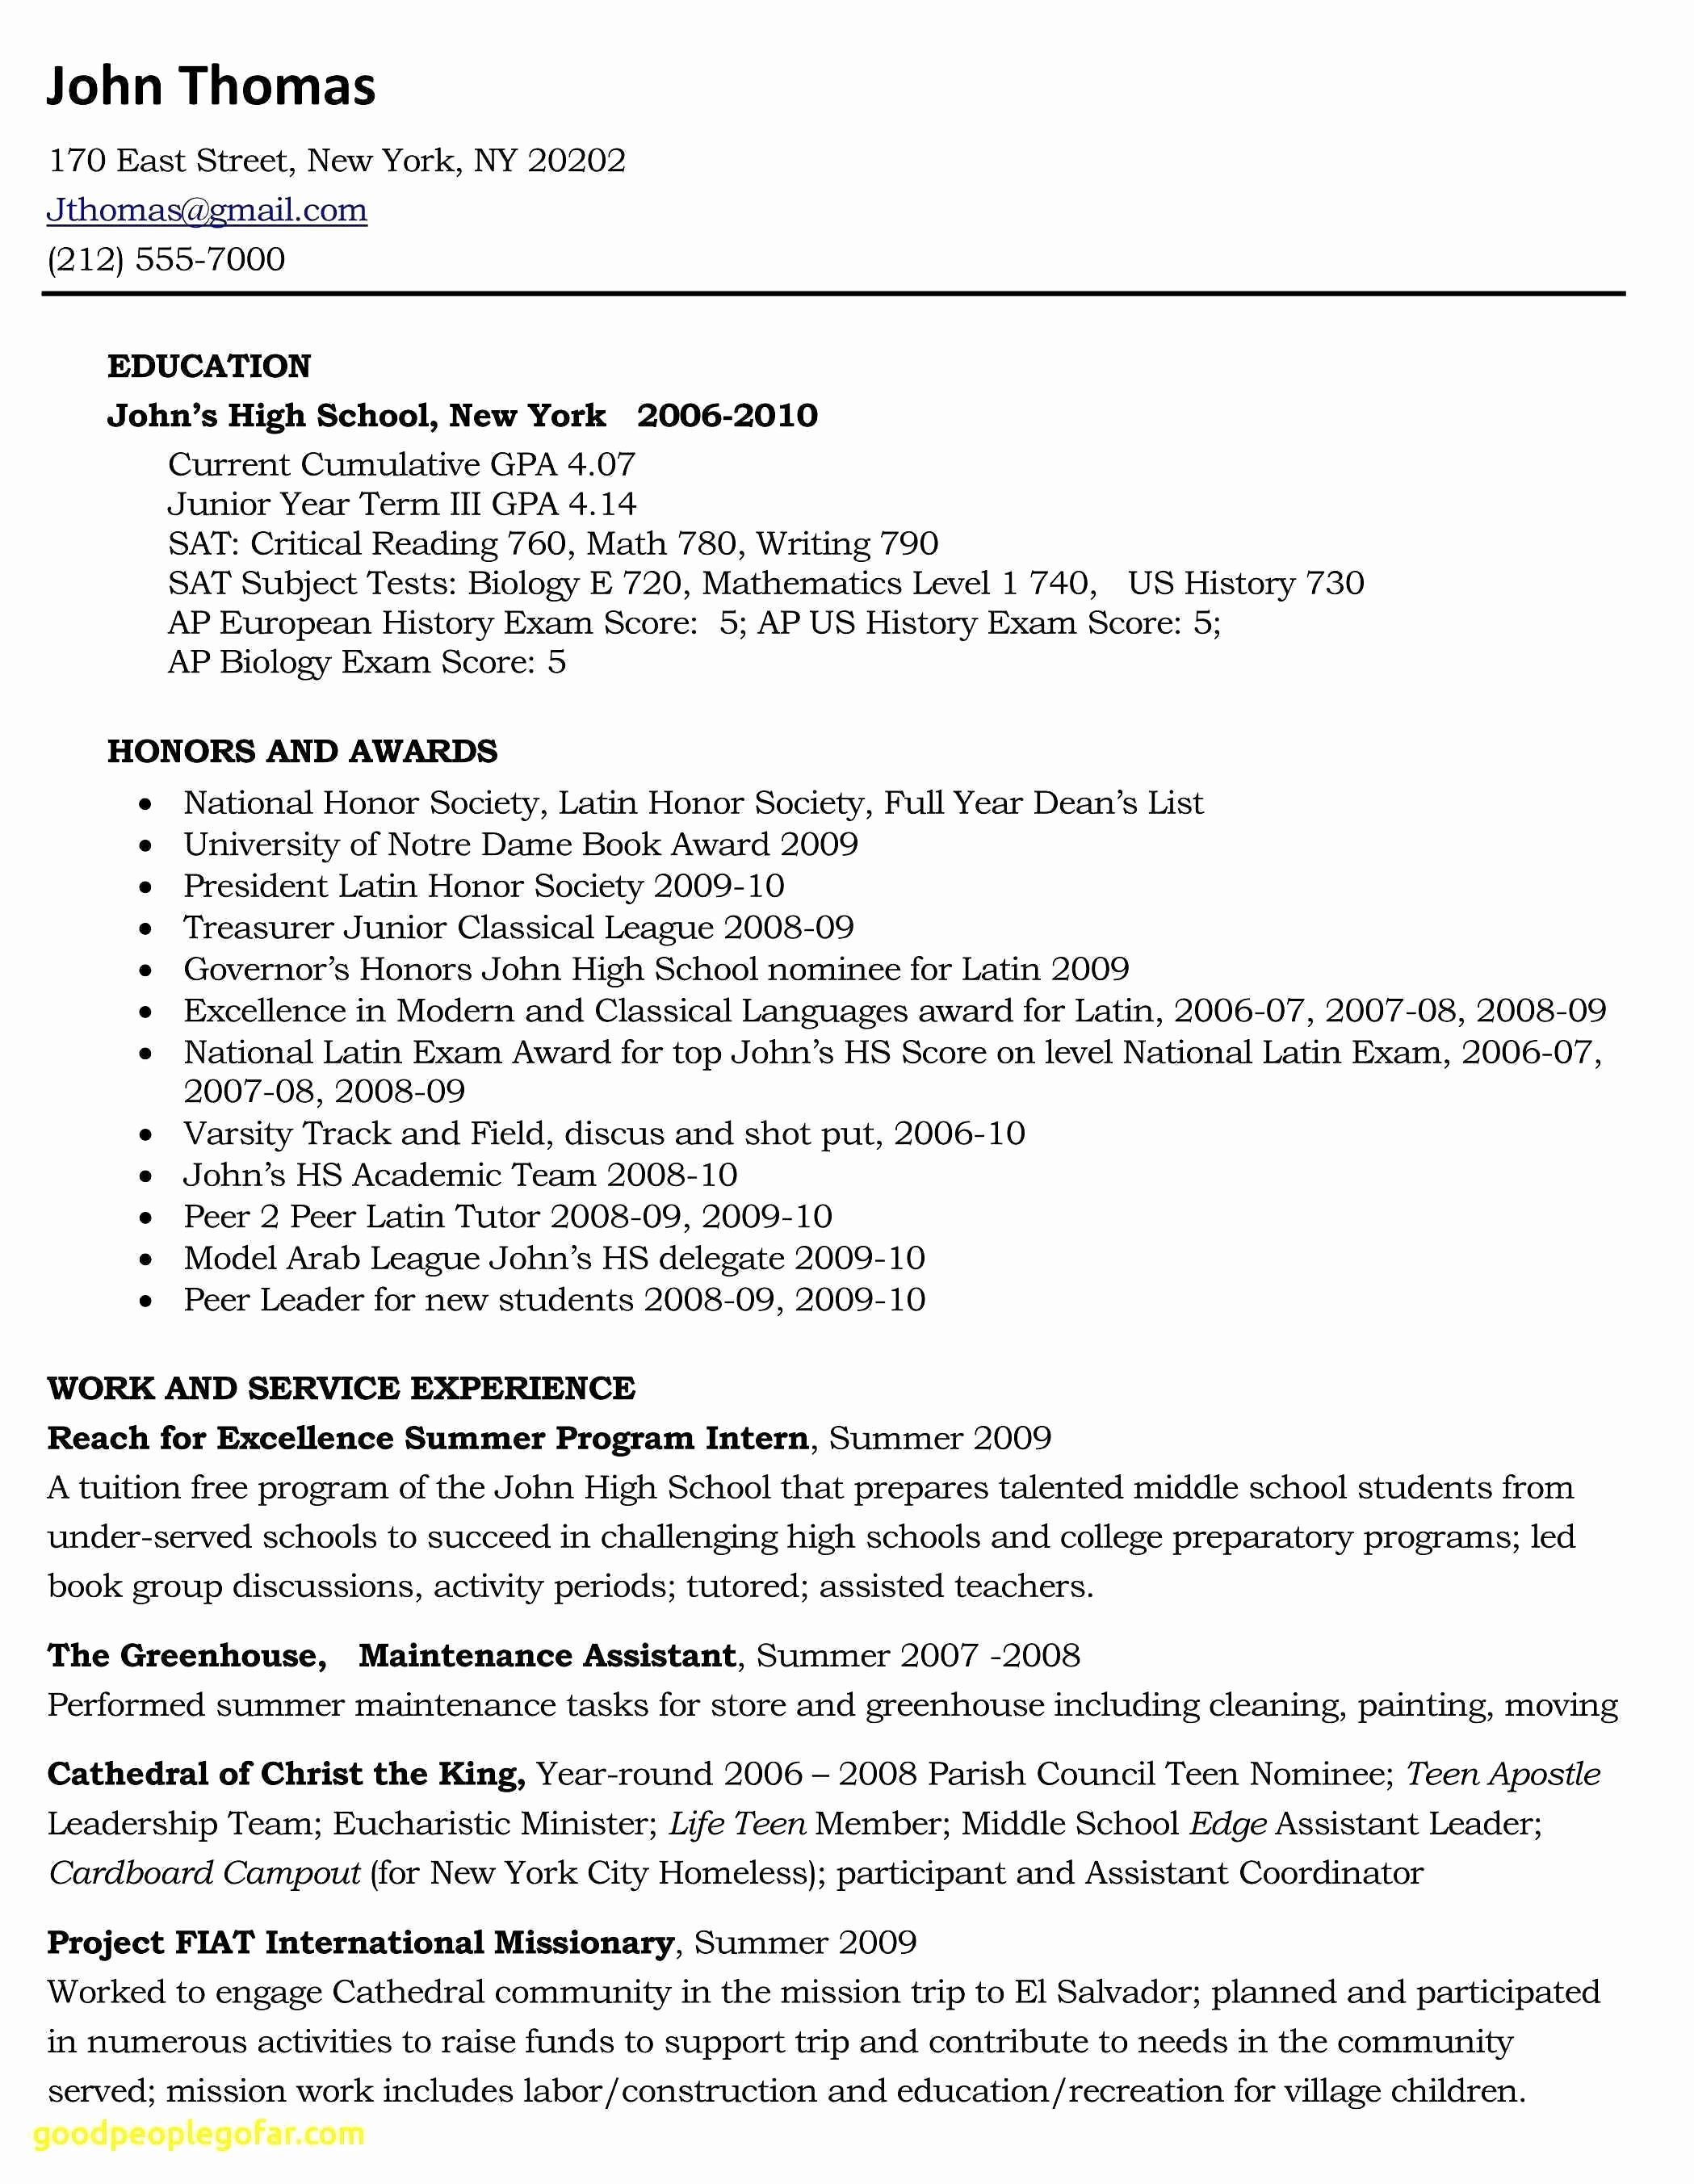 Student Resume Builder - Resume Builder for College Students Inspirational Free Resume Maker